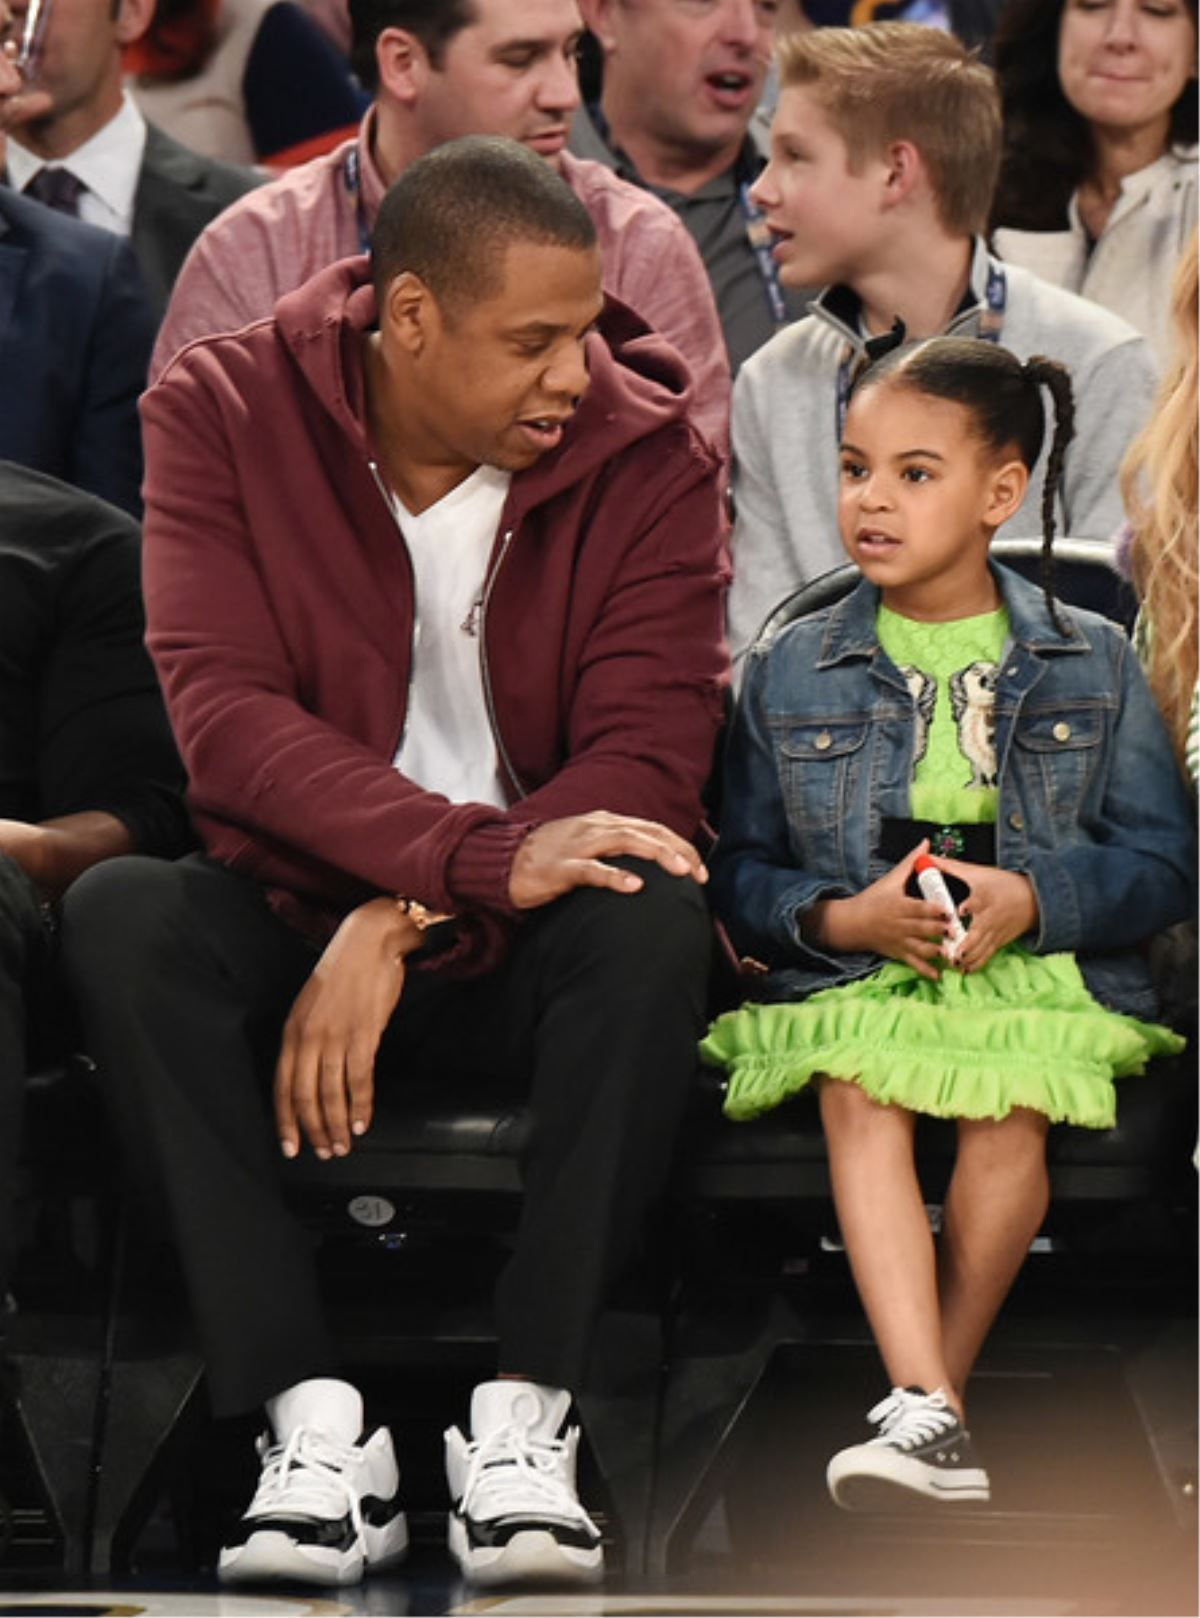 JAY Z APOLOGIZES TO BEYONCE AND ALL WOMEN: DOES HE DO A GOOD JOB?